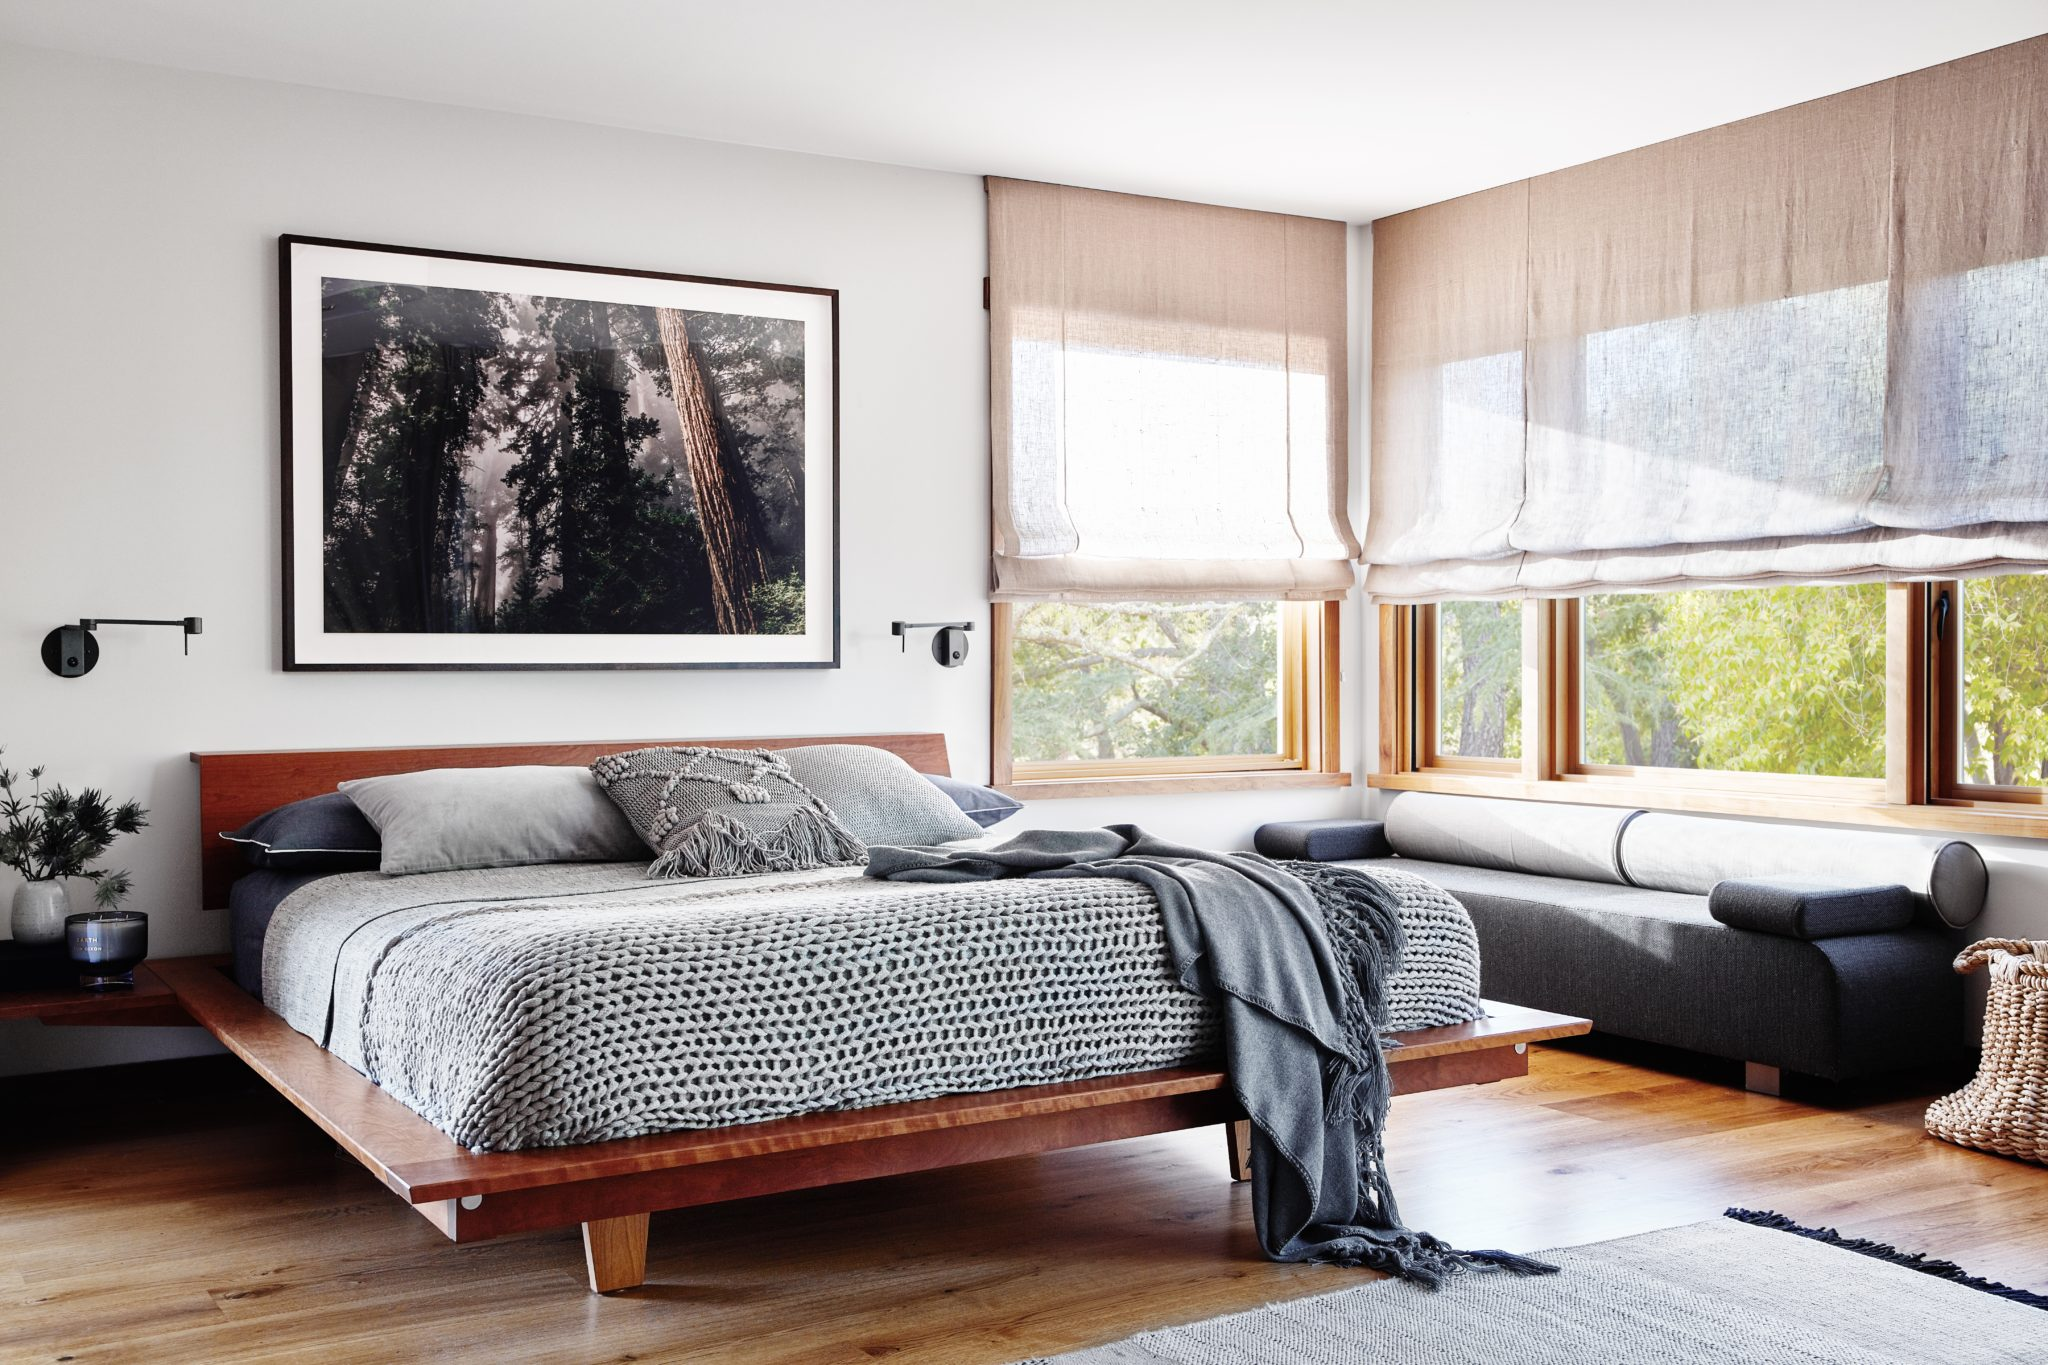 Soulful Home Master Bedroom - Thos. Moser's Edo Bed with organic bedding by Staprans Design